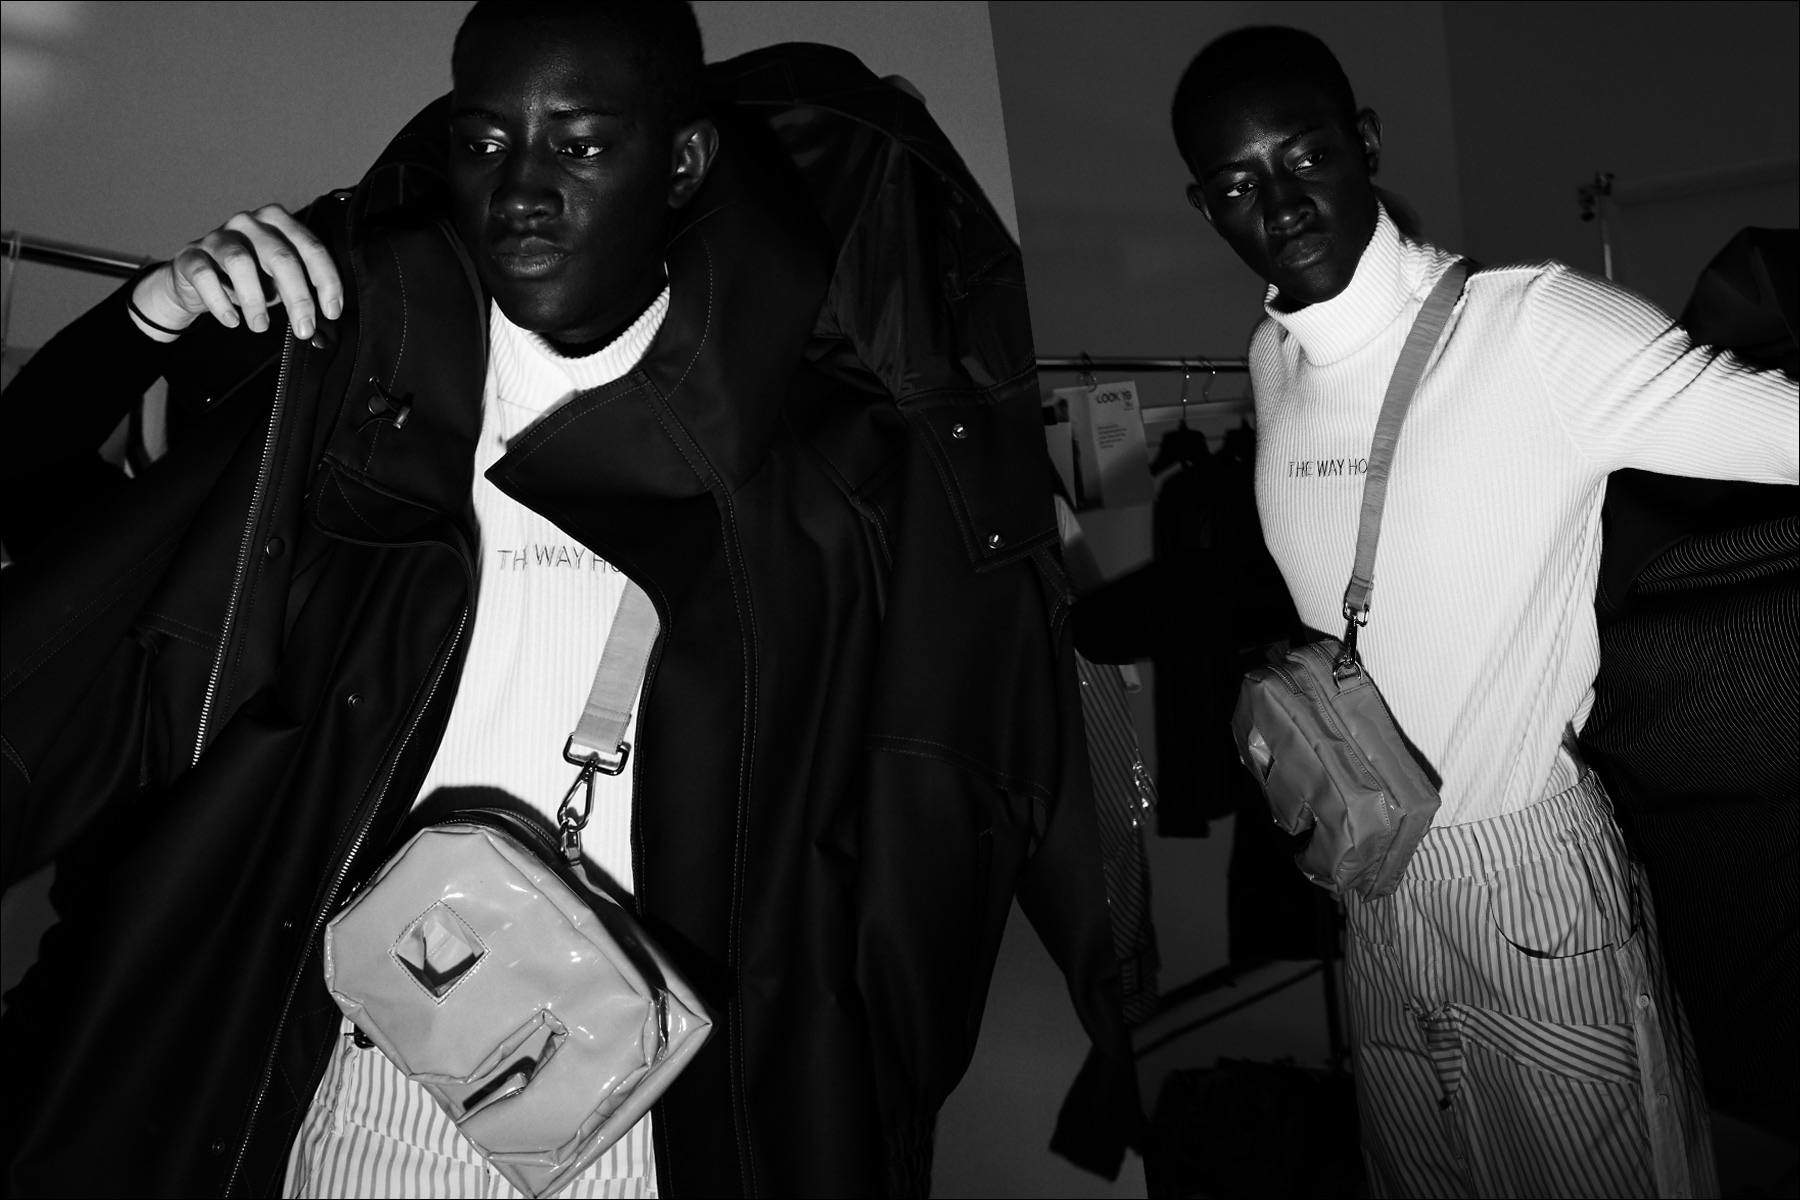 Male model Oumar Diouf photographed dressing backstage at Feng Chen Wang for Fall 2018. Photography by Alexander Thompson for Ponyboy magazine.